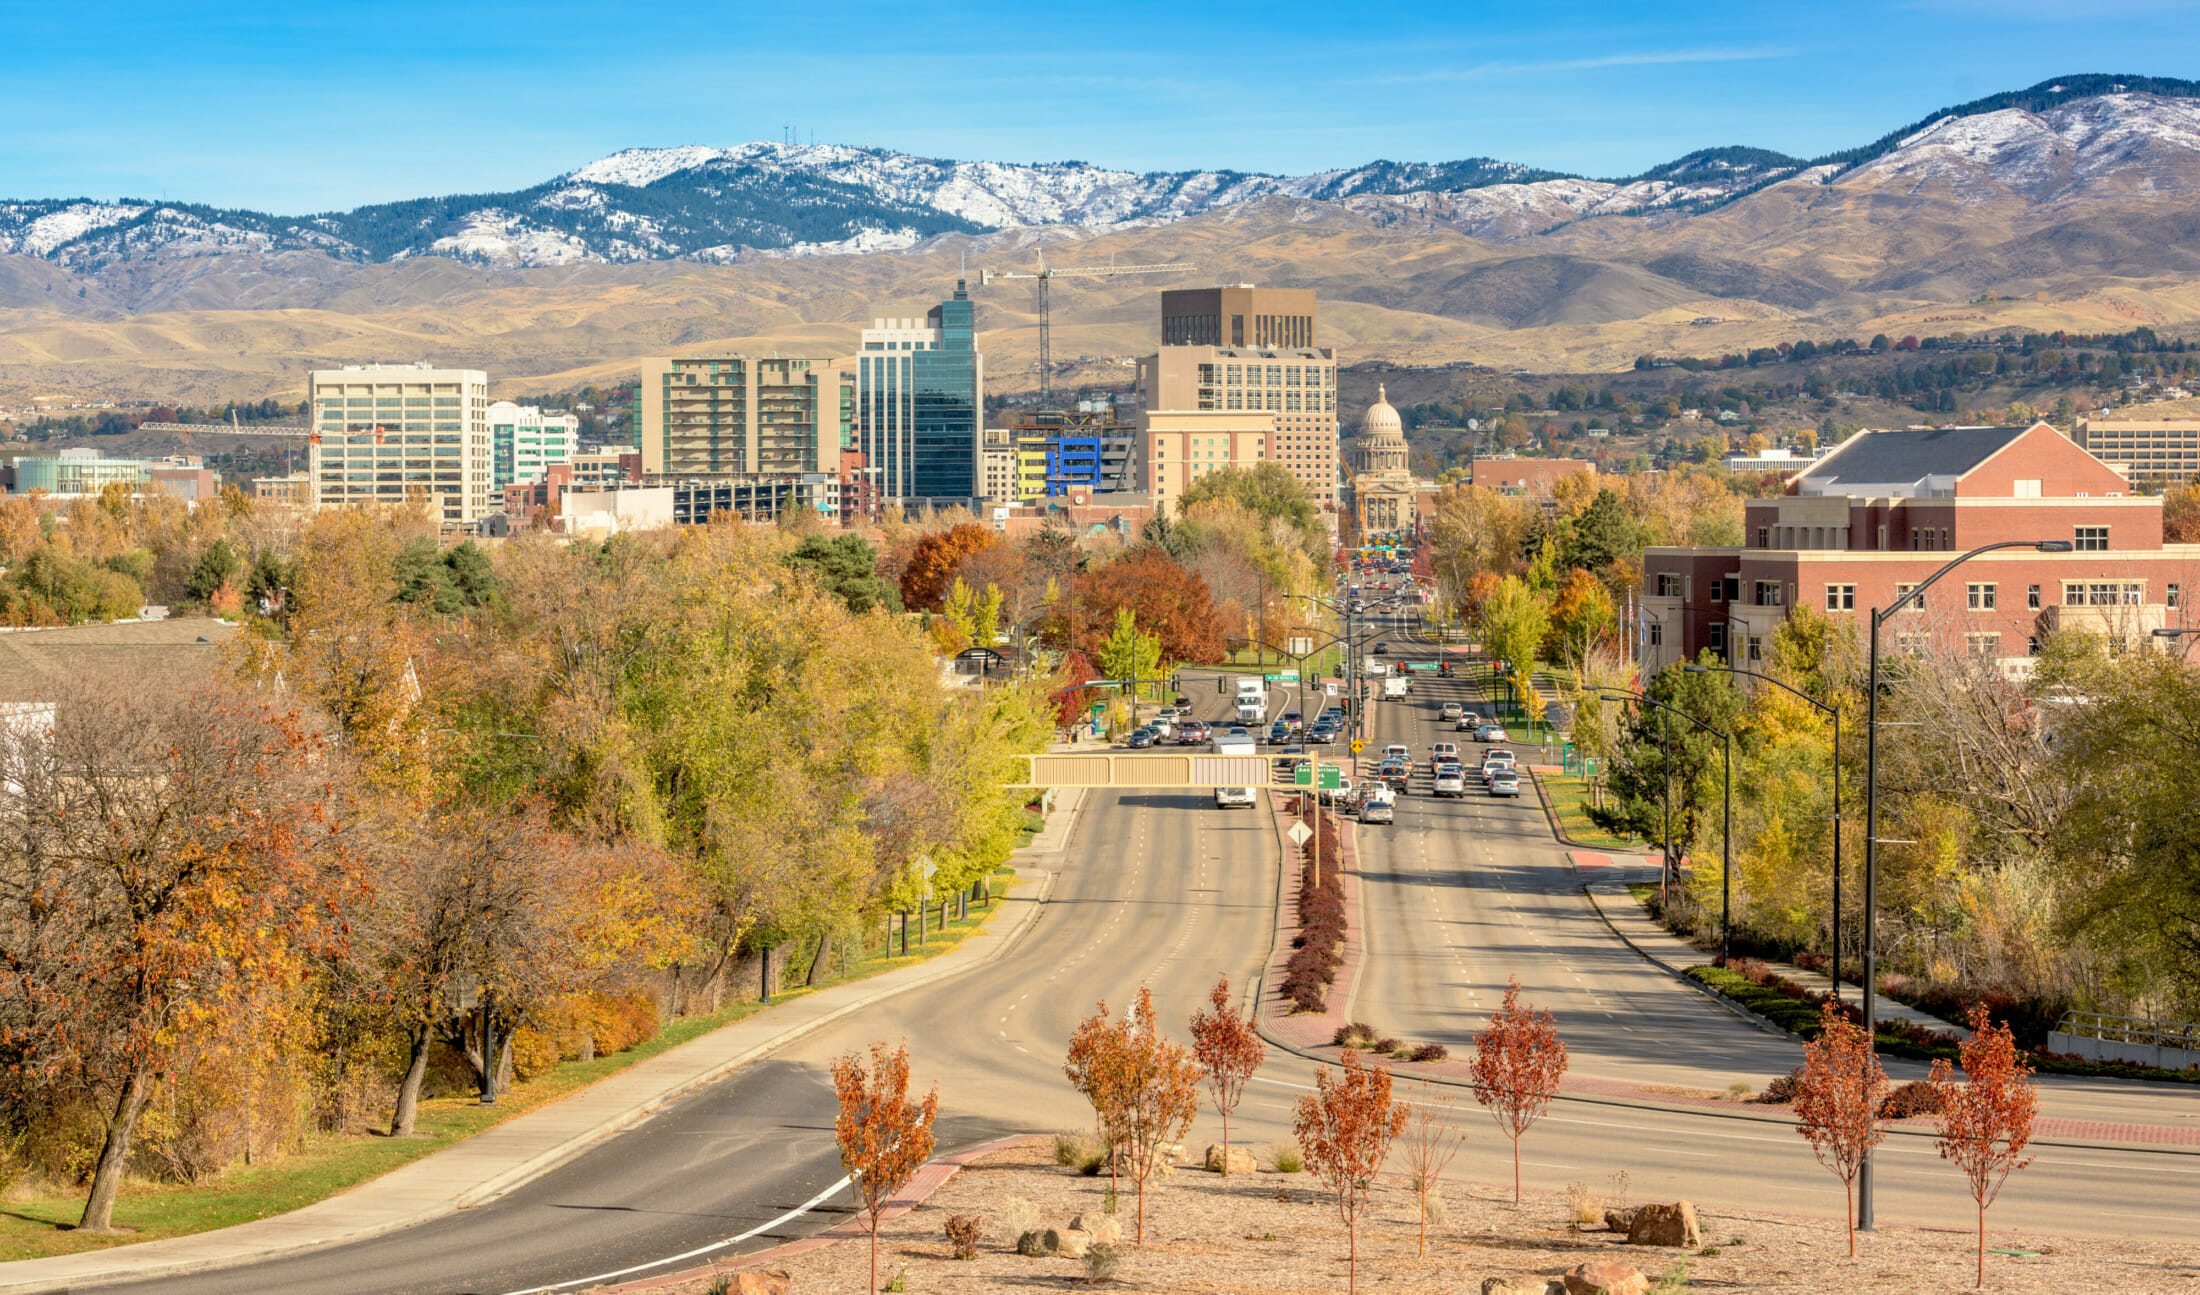 Boise, Idaho | 50 Up-and-Coming Real Estate Markets to Watch in 2019 | Buildium